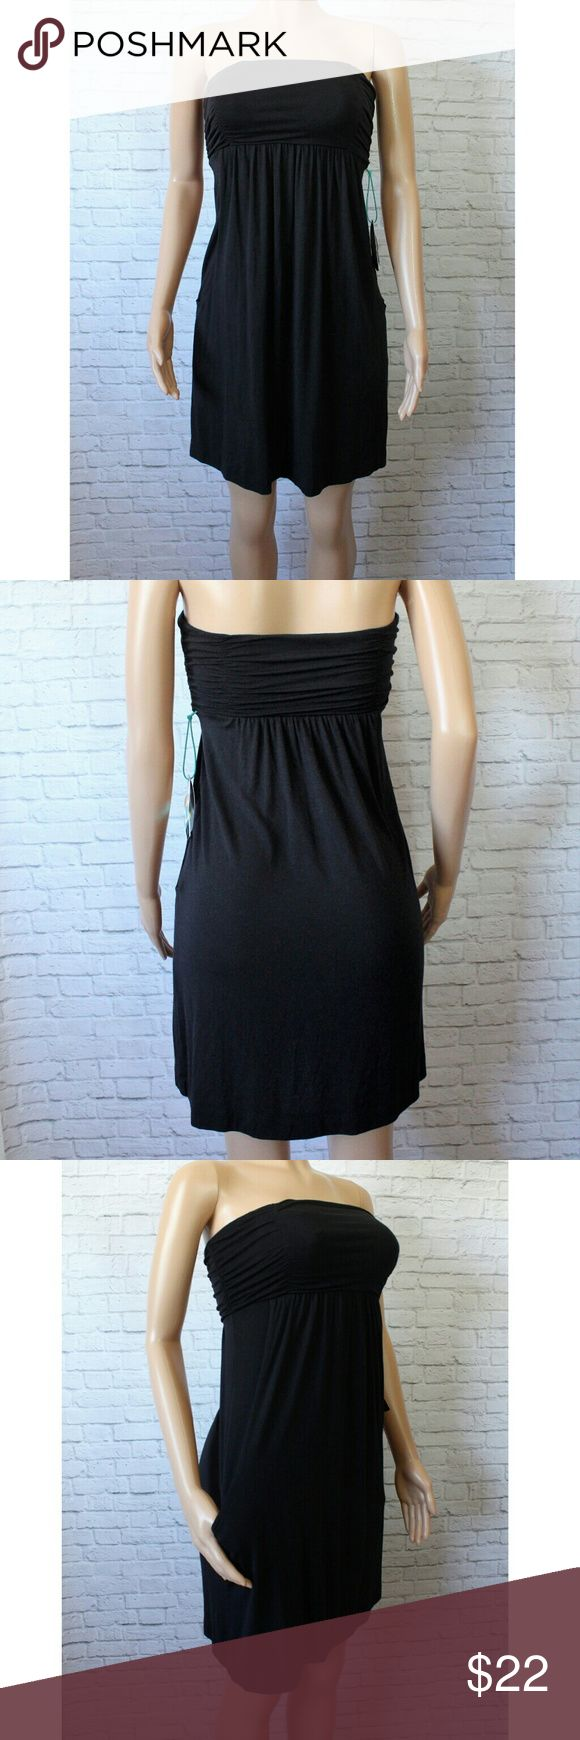 Half Moon Black Cover up Trendy black beach cover up dress. Has a padded bust and pockets. Size Small. NWT Modern Movement Swim Coverups